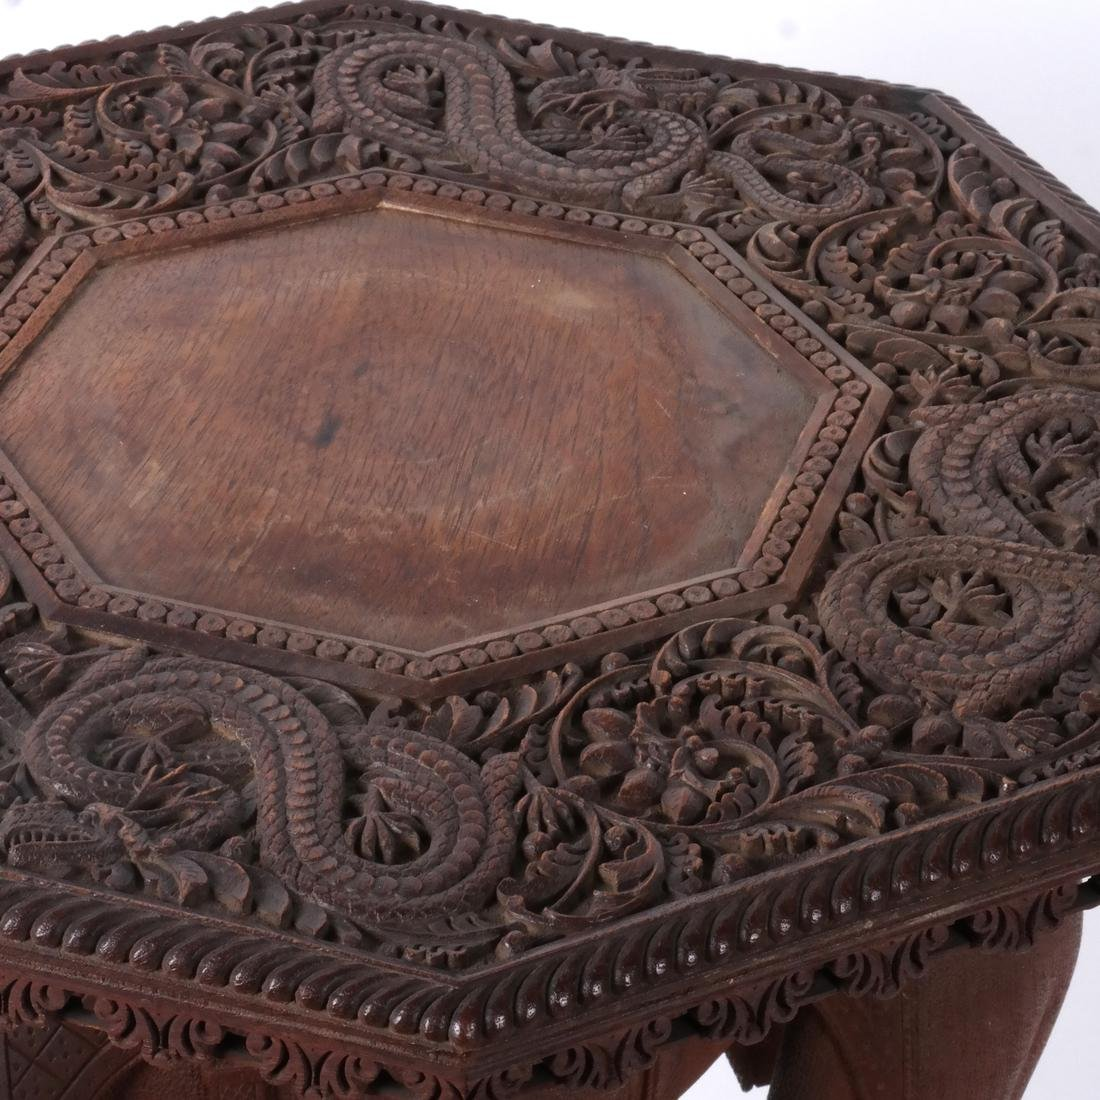 Syrian-Moroccan Camel-Form Table - 3